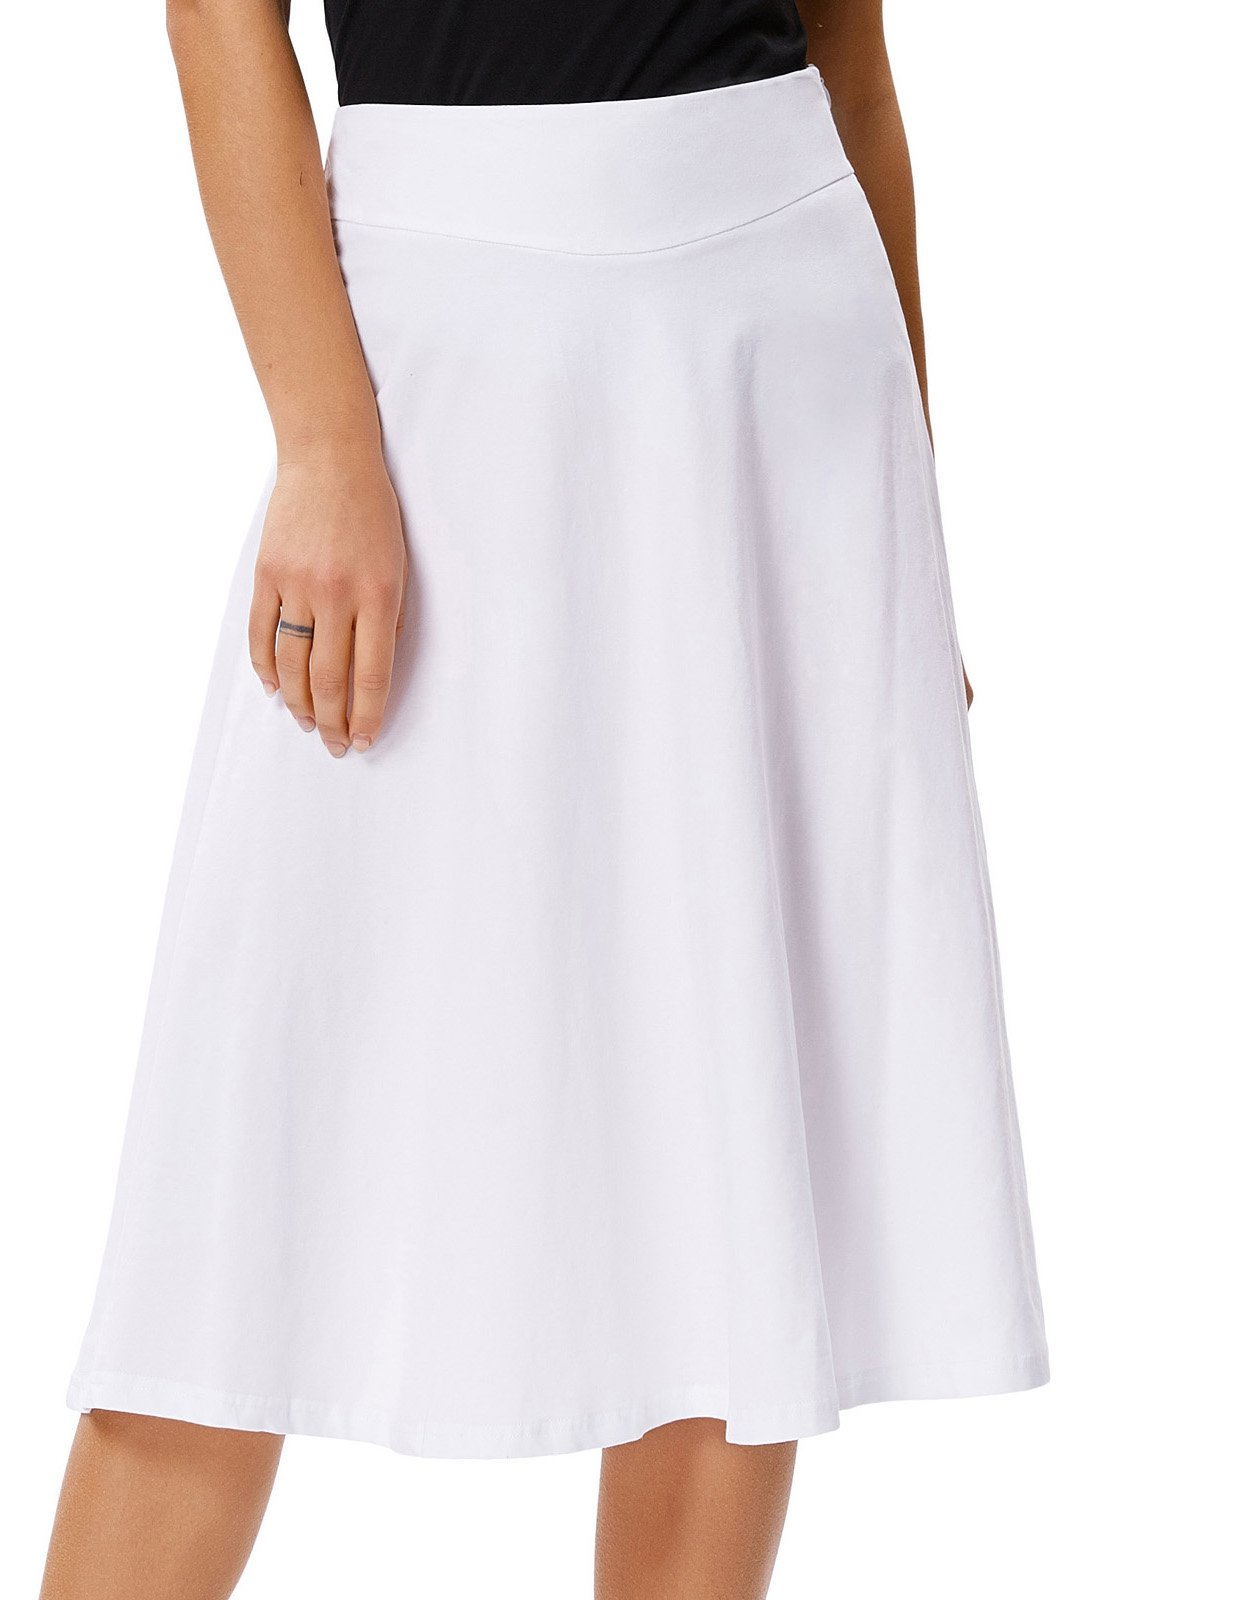 Stretchy Full Skater Kneen Length Drape Swing Skirt(M,White)